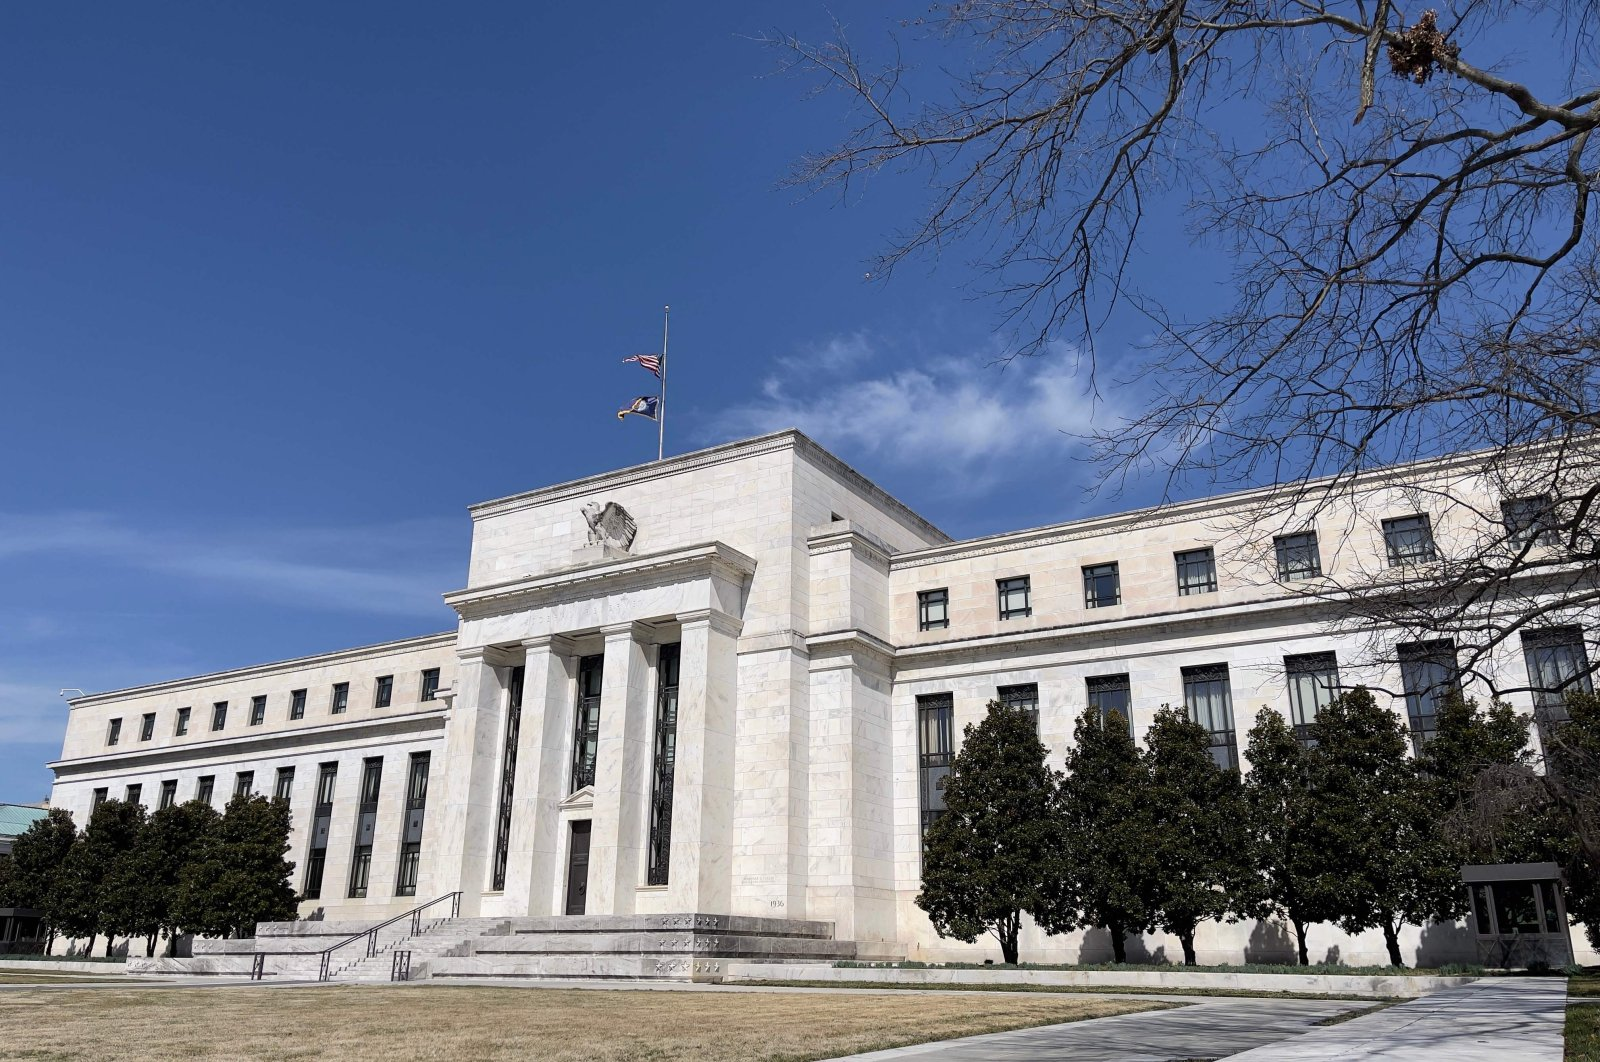 The Federal Reserve building is seen in Washington, D.C., March 19, 2021. (AFP Photo)